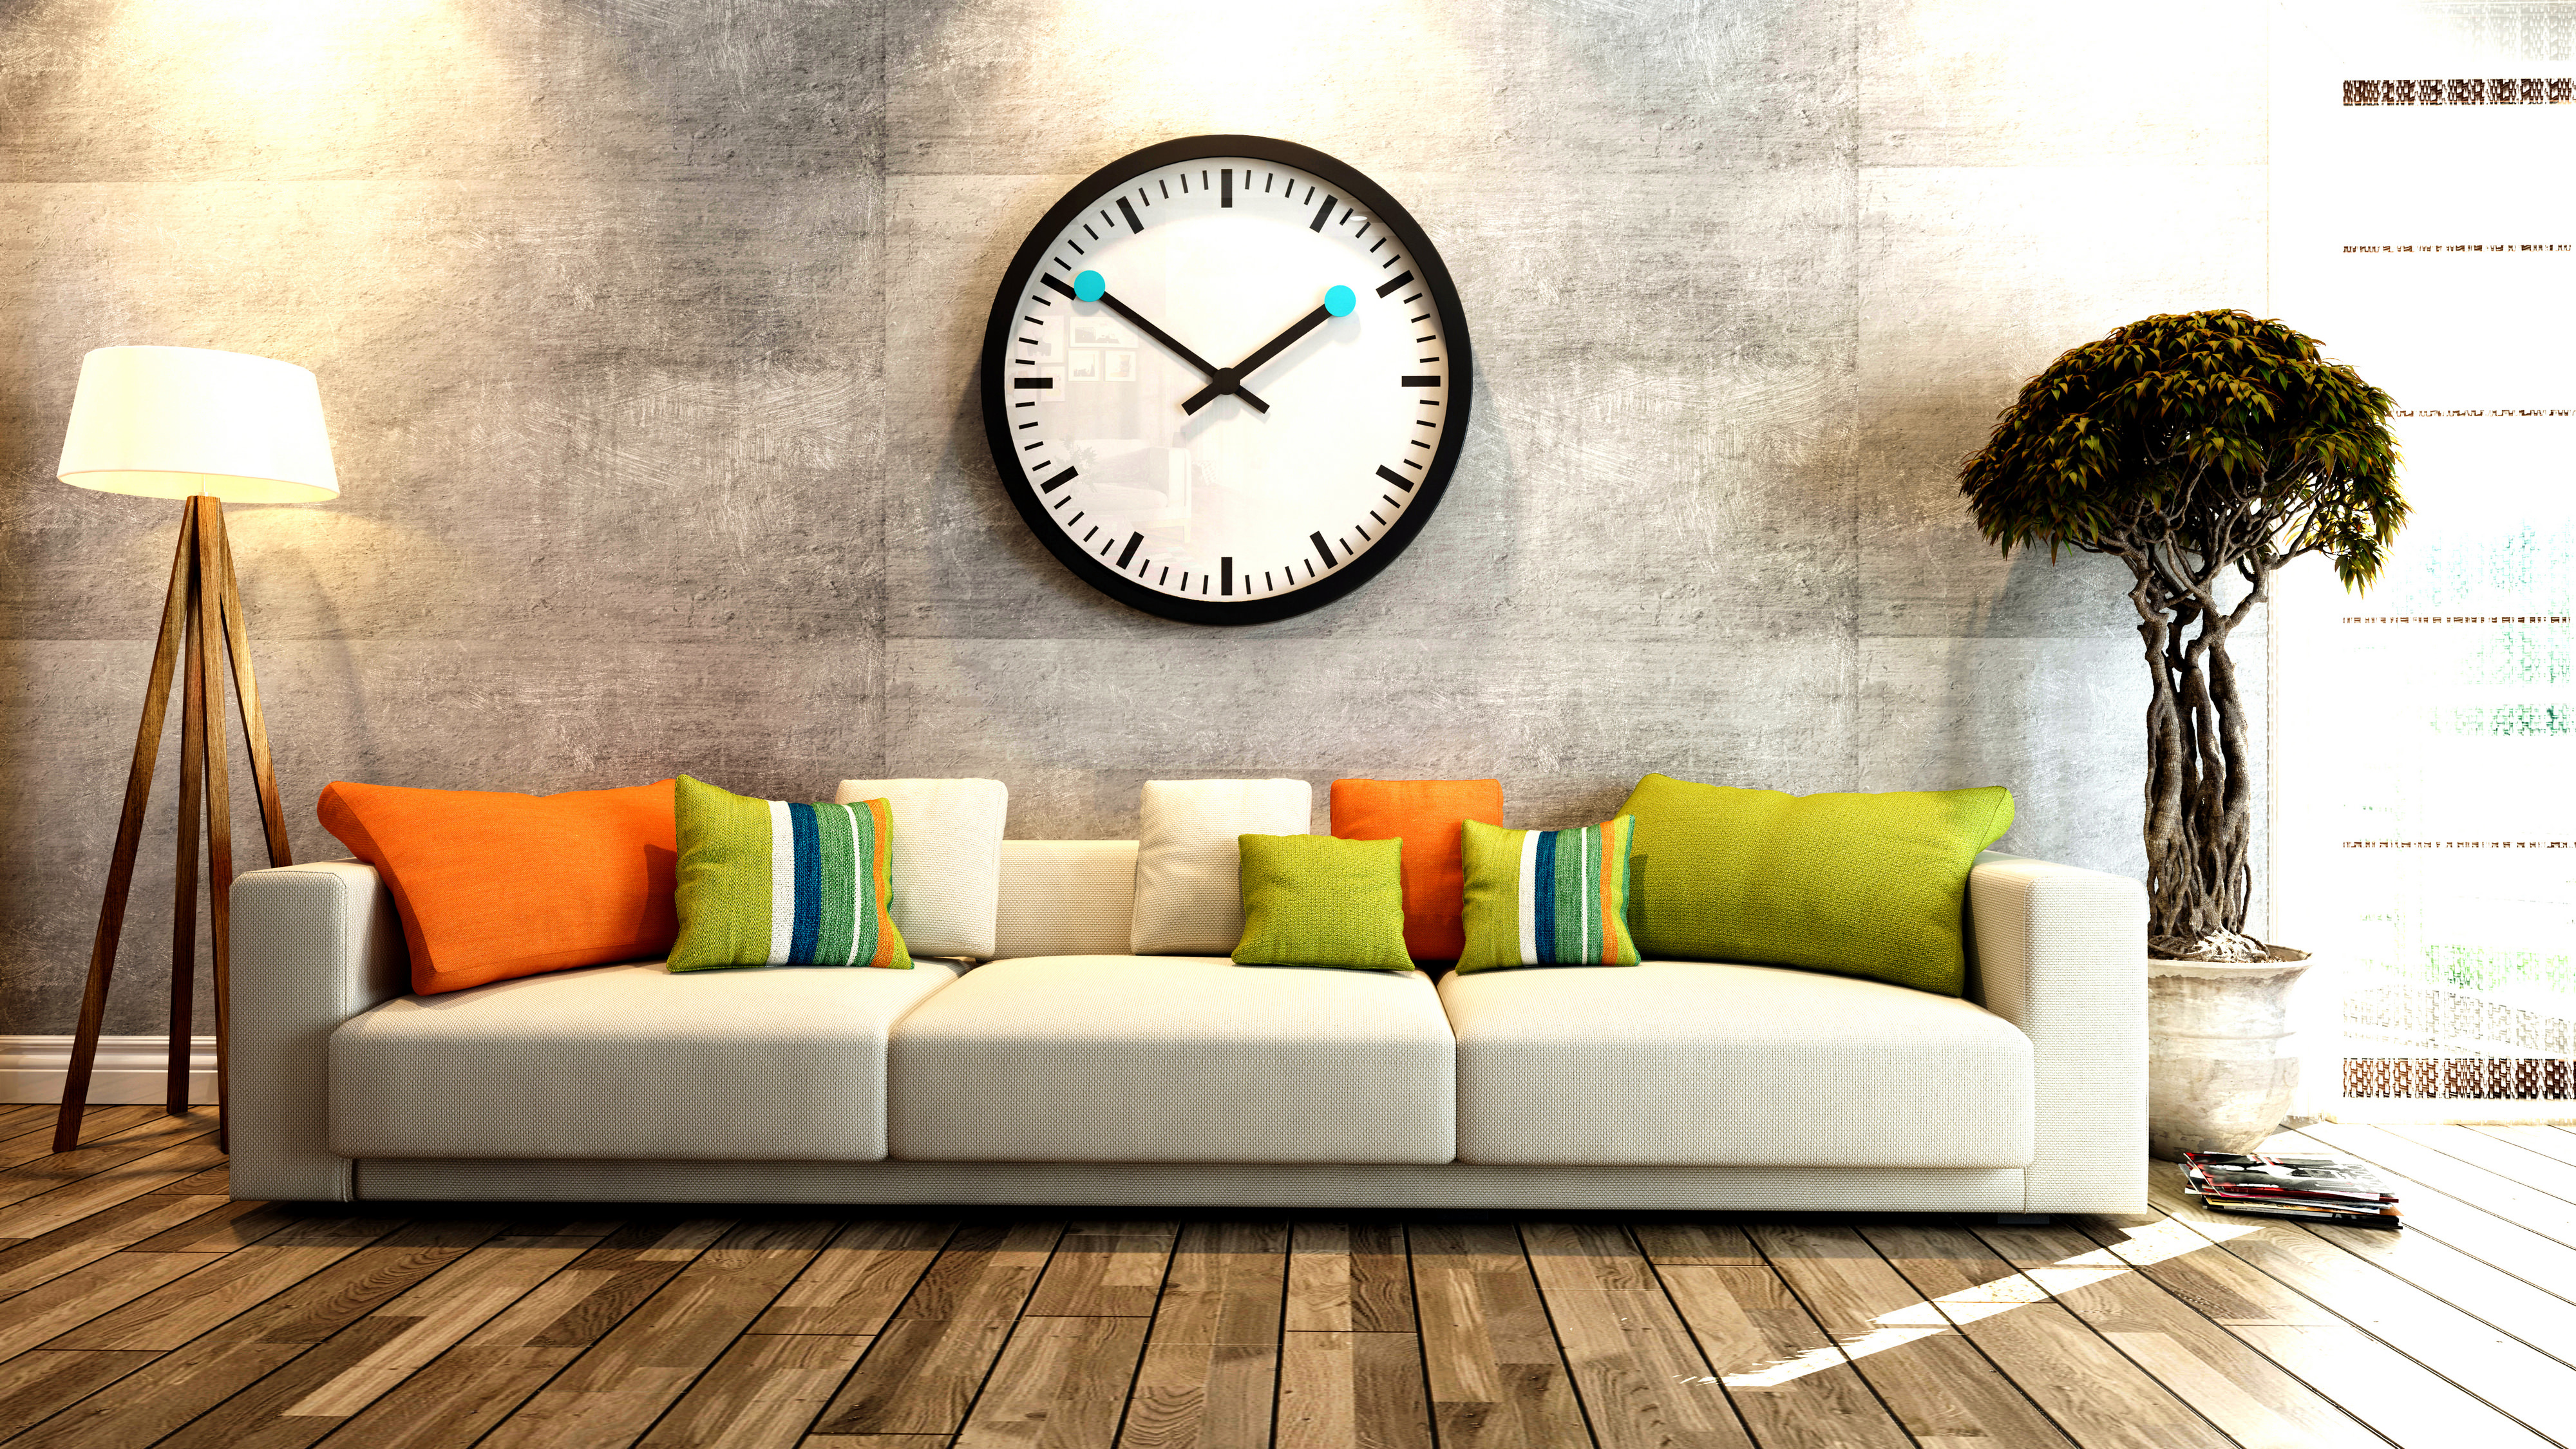 Home Decor 6 4k Ultra HD Wallpaper and Background Image ...